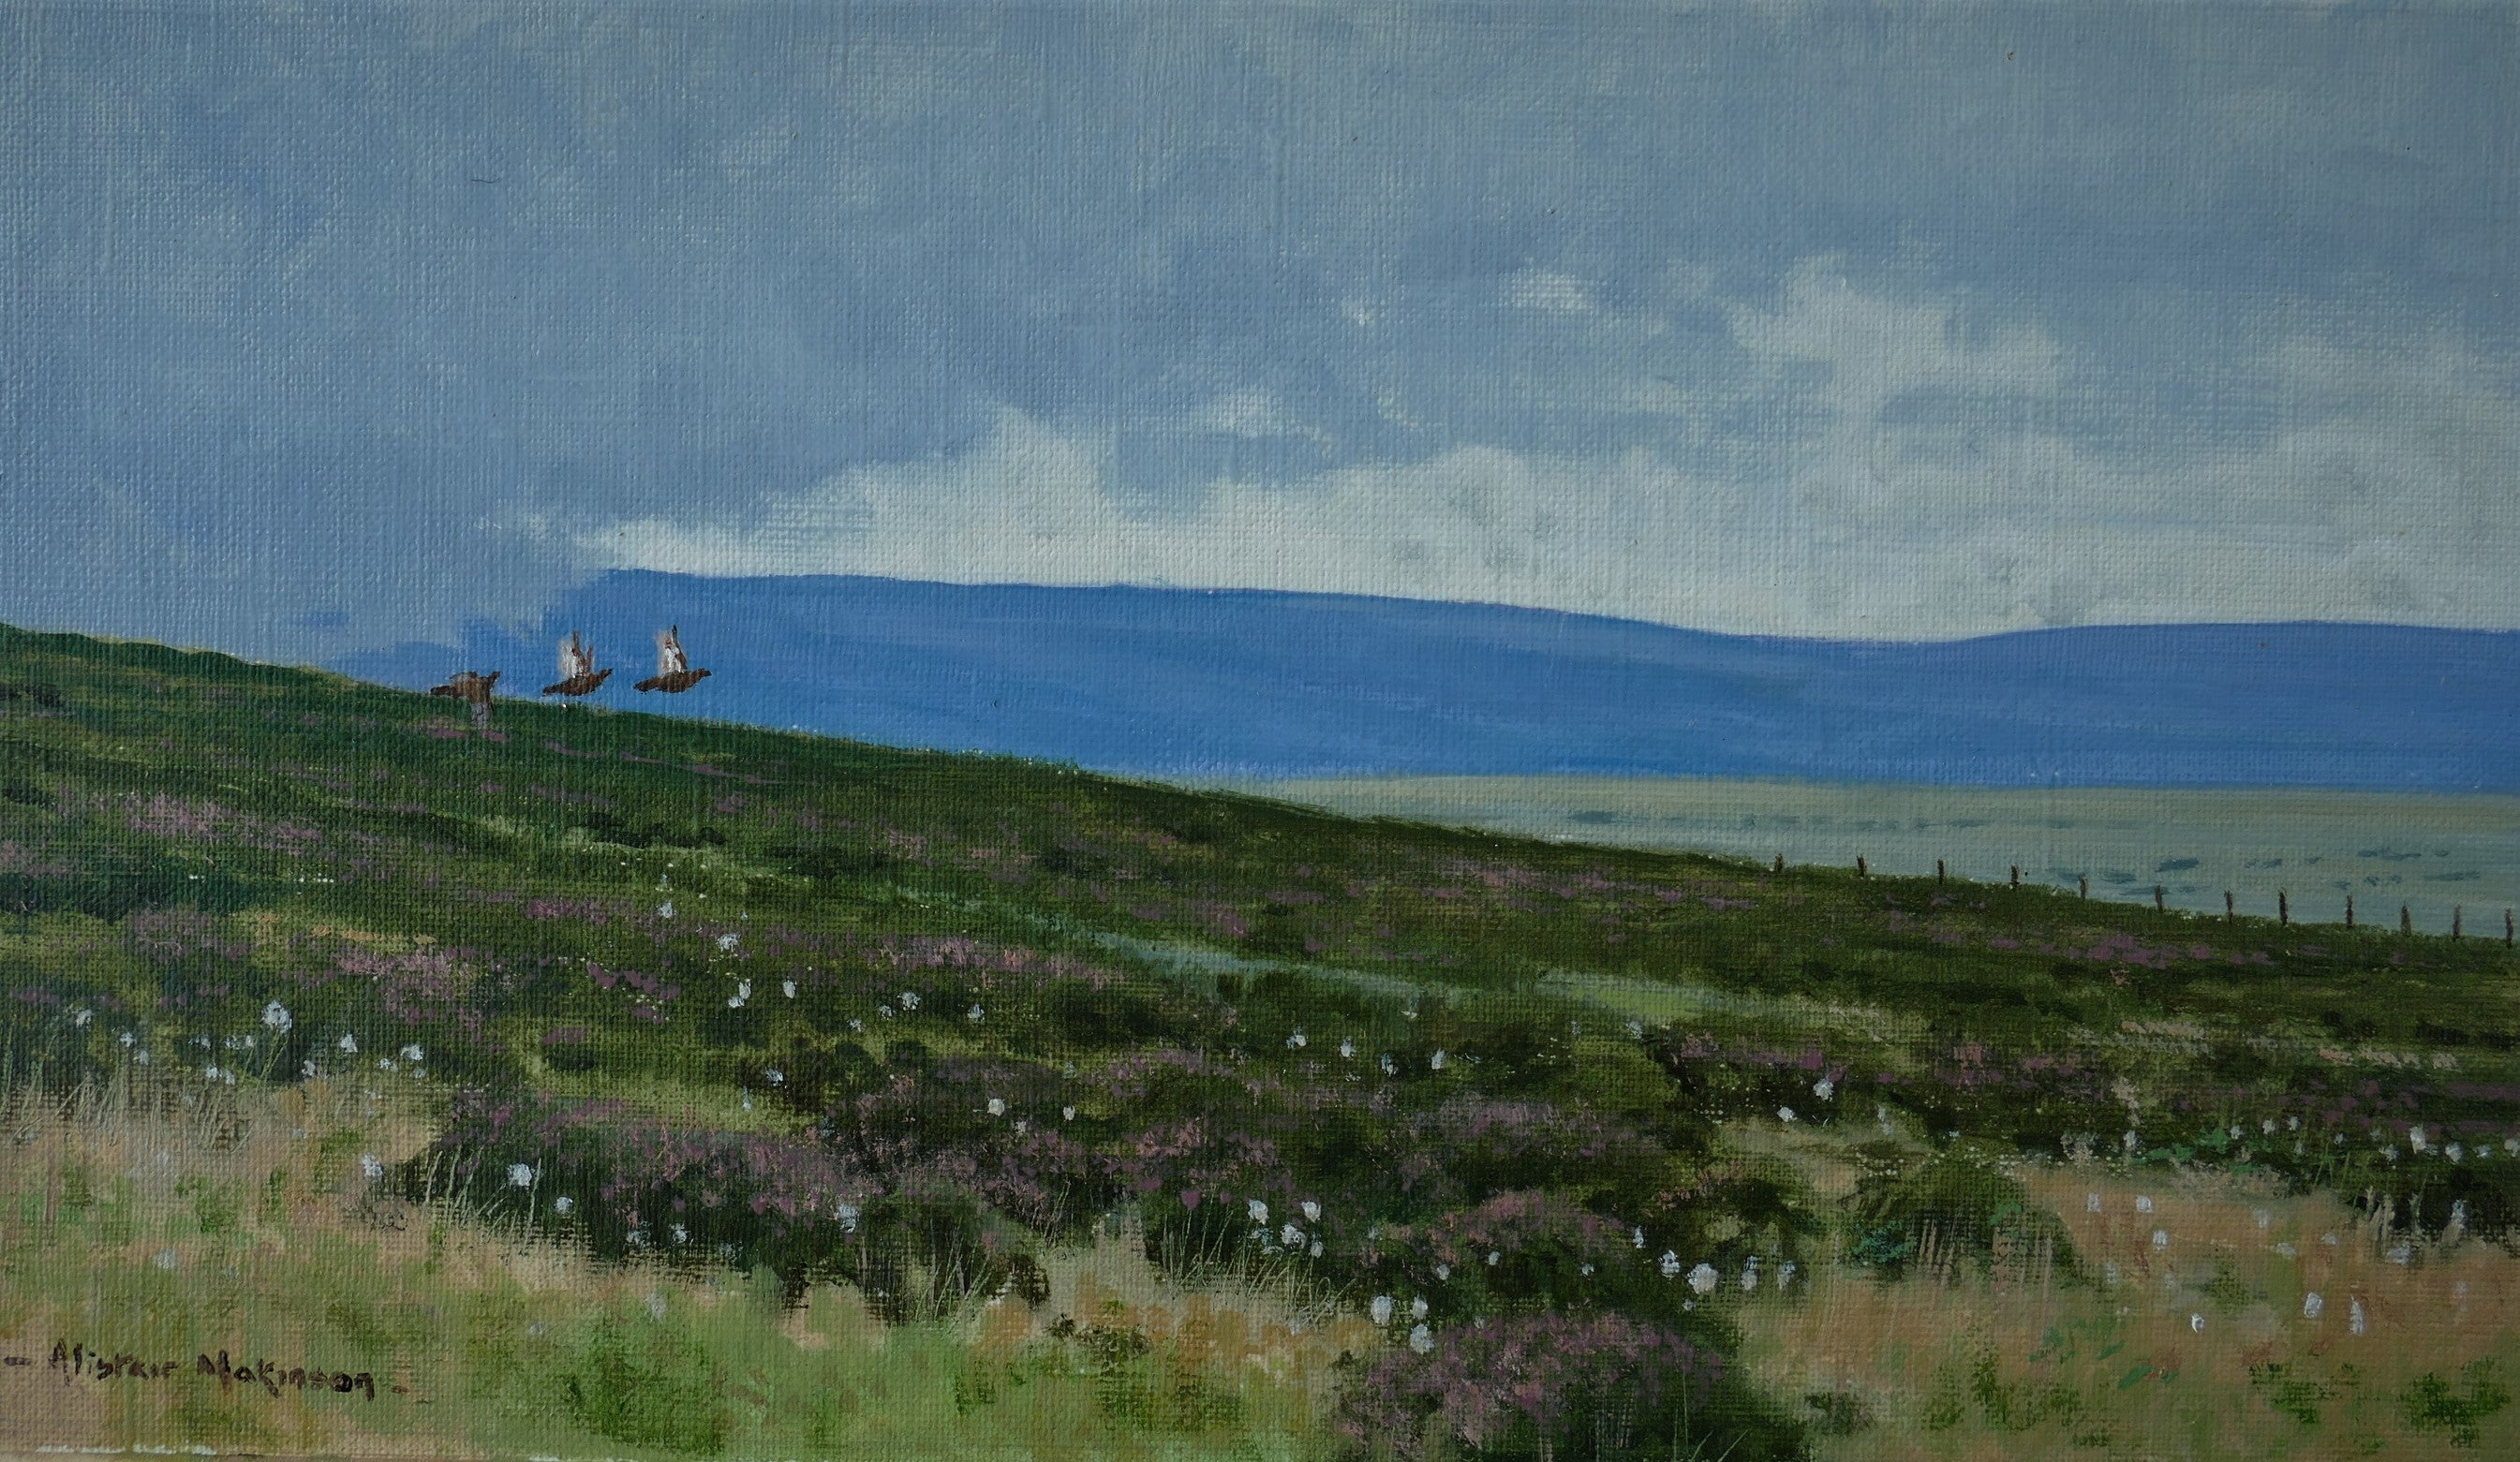 'Approaching Shower' - Original Oil Painting by Alistair Makinson - 15 x 26cm